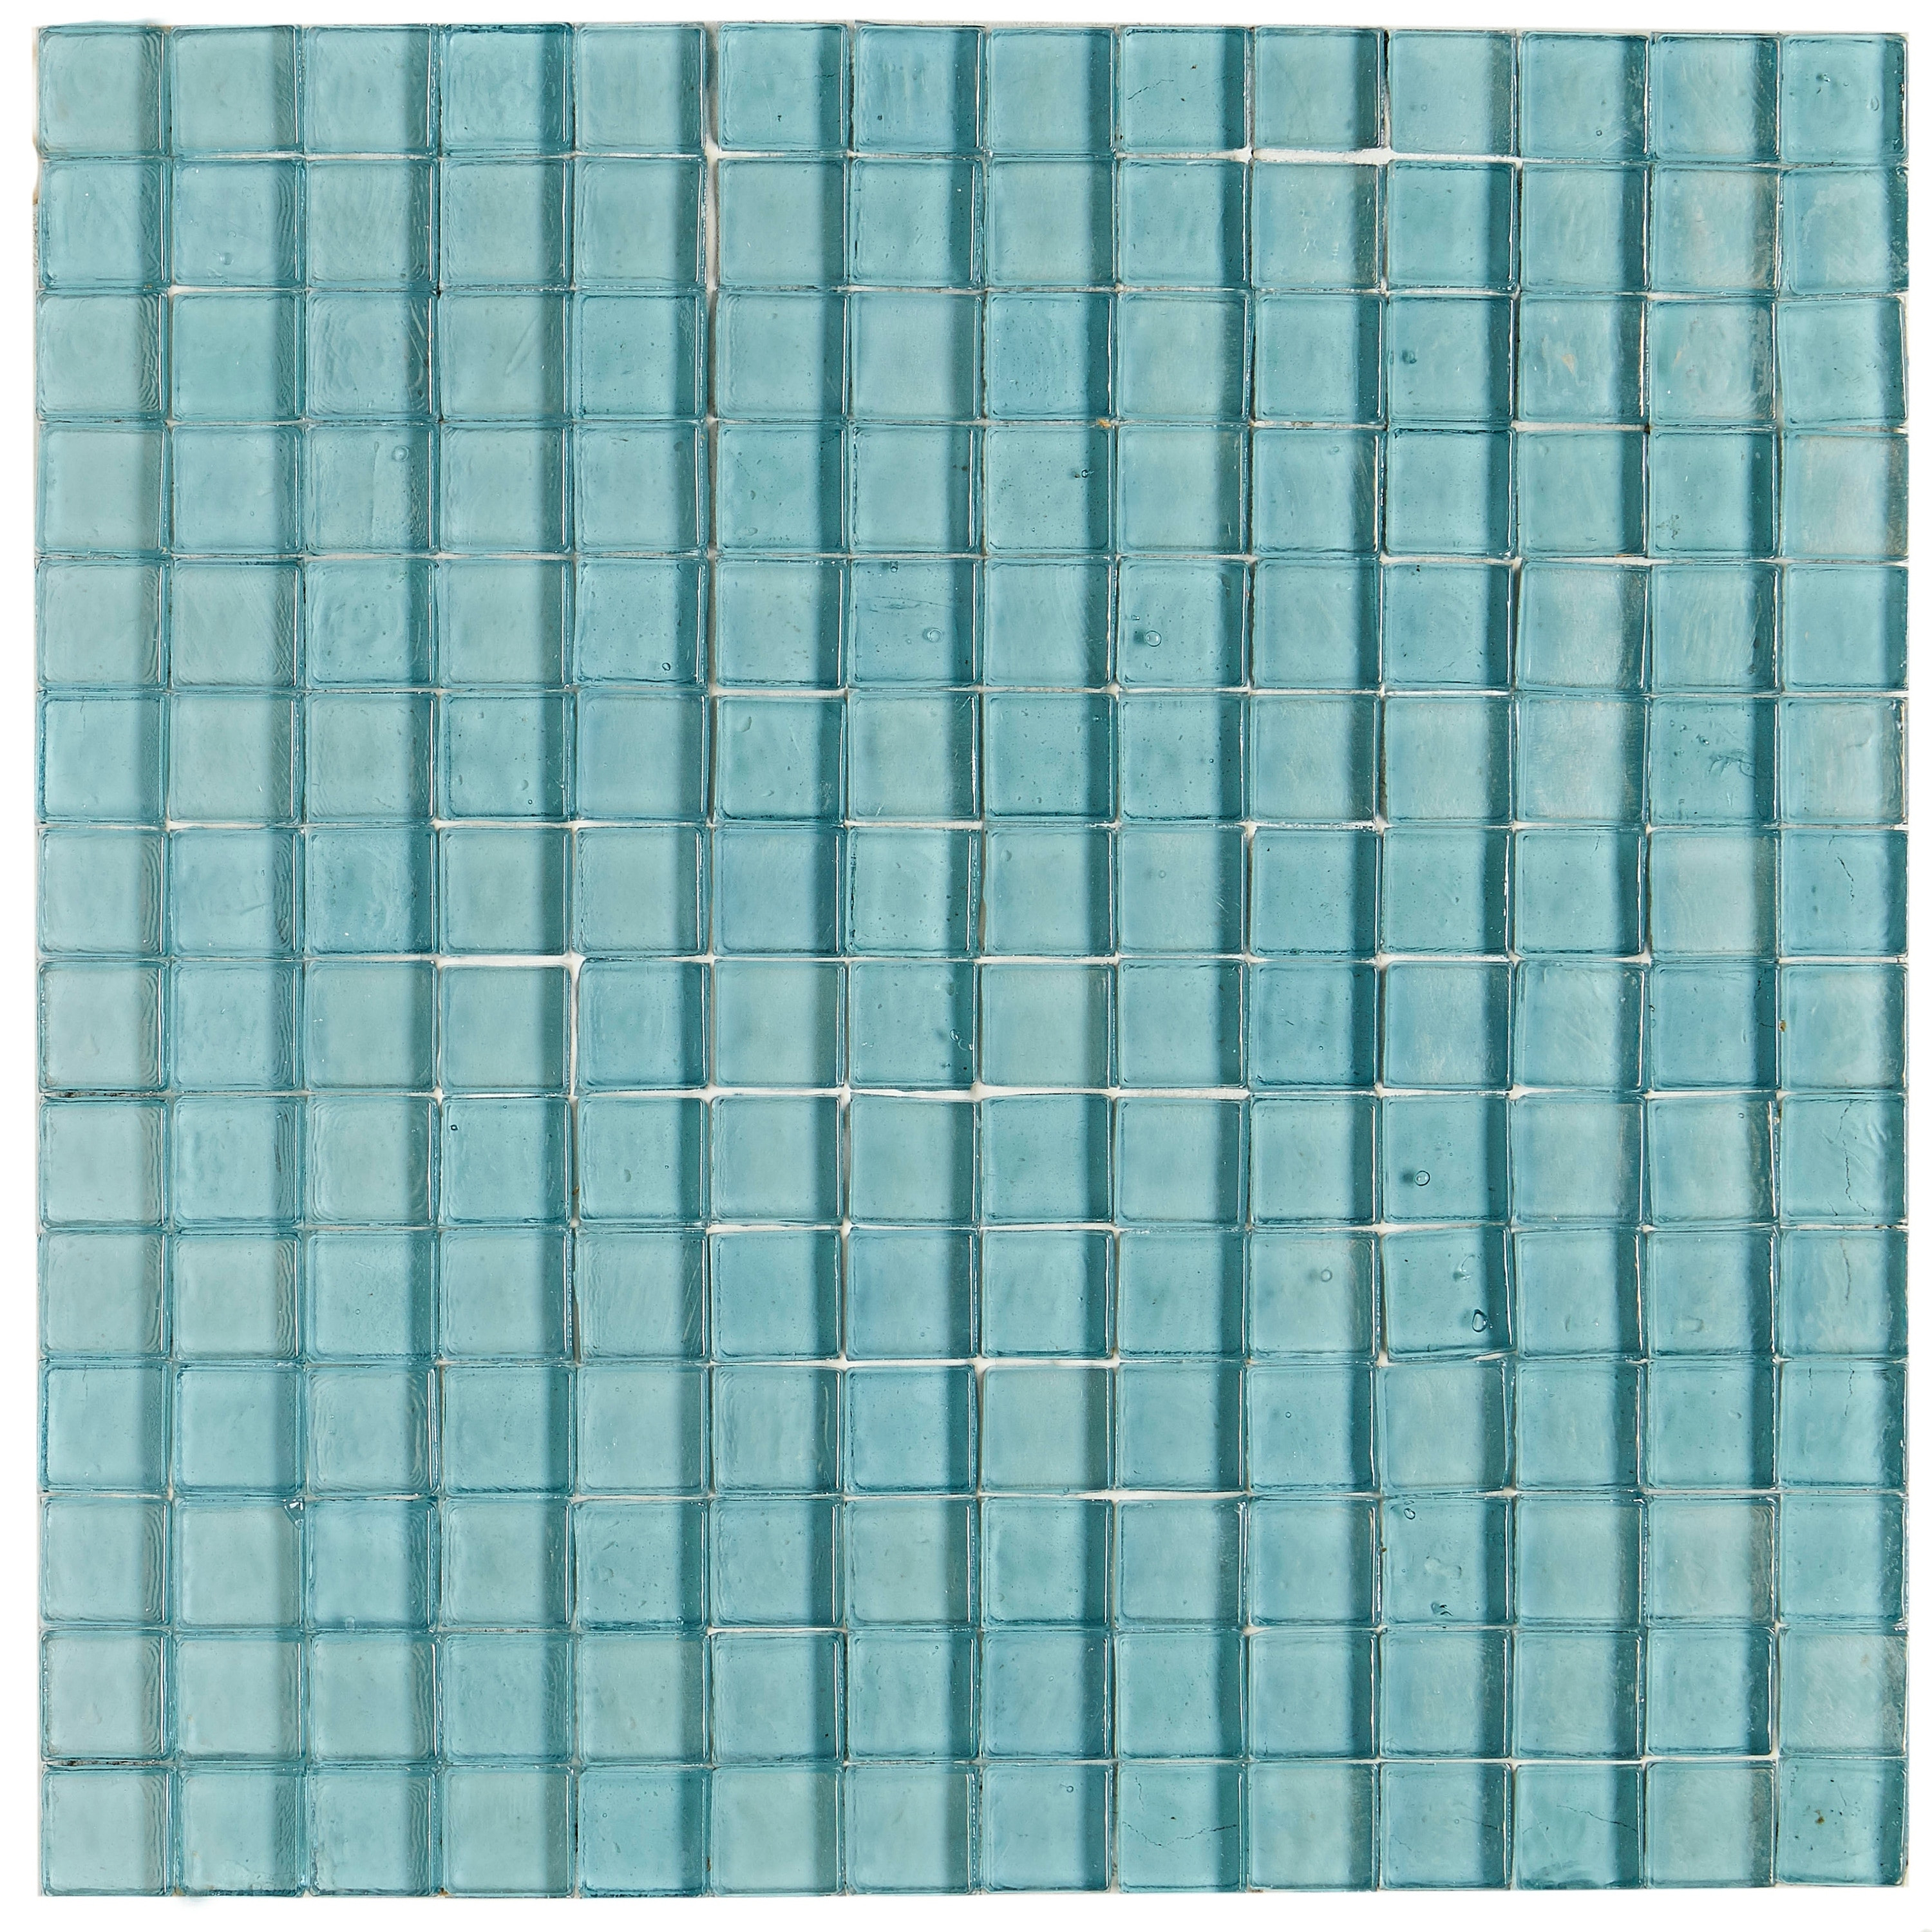 Shop Shimmering Iridescent Glass Tile 3/4x3/4-inch Mosaic in Sky ...